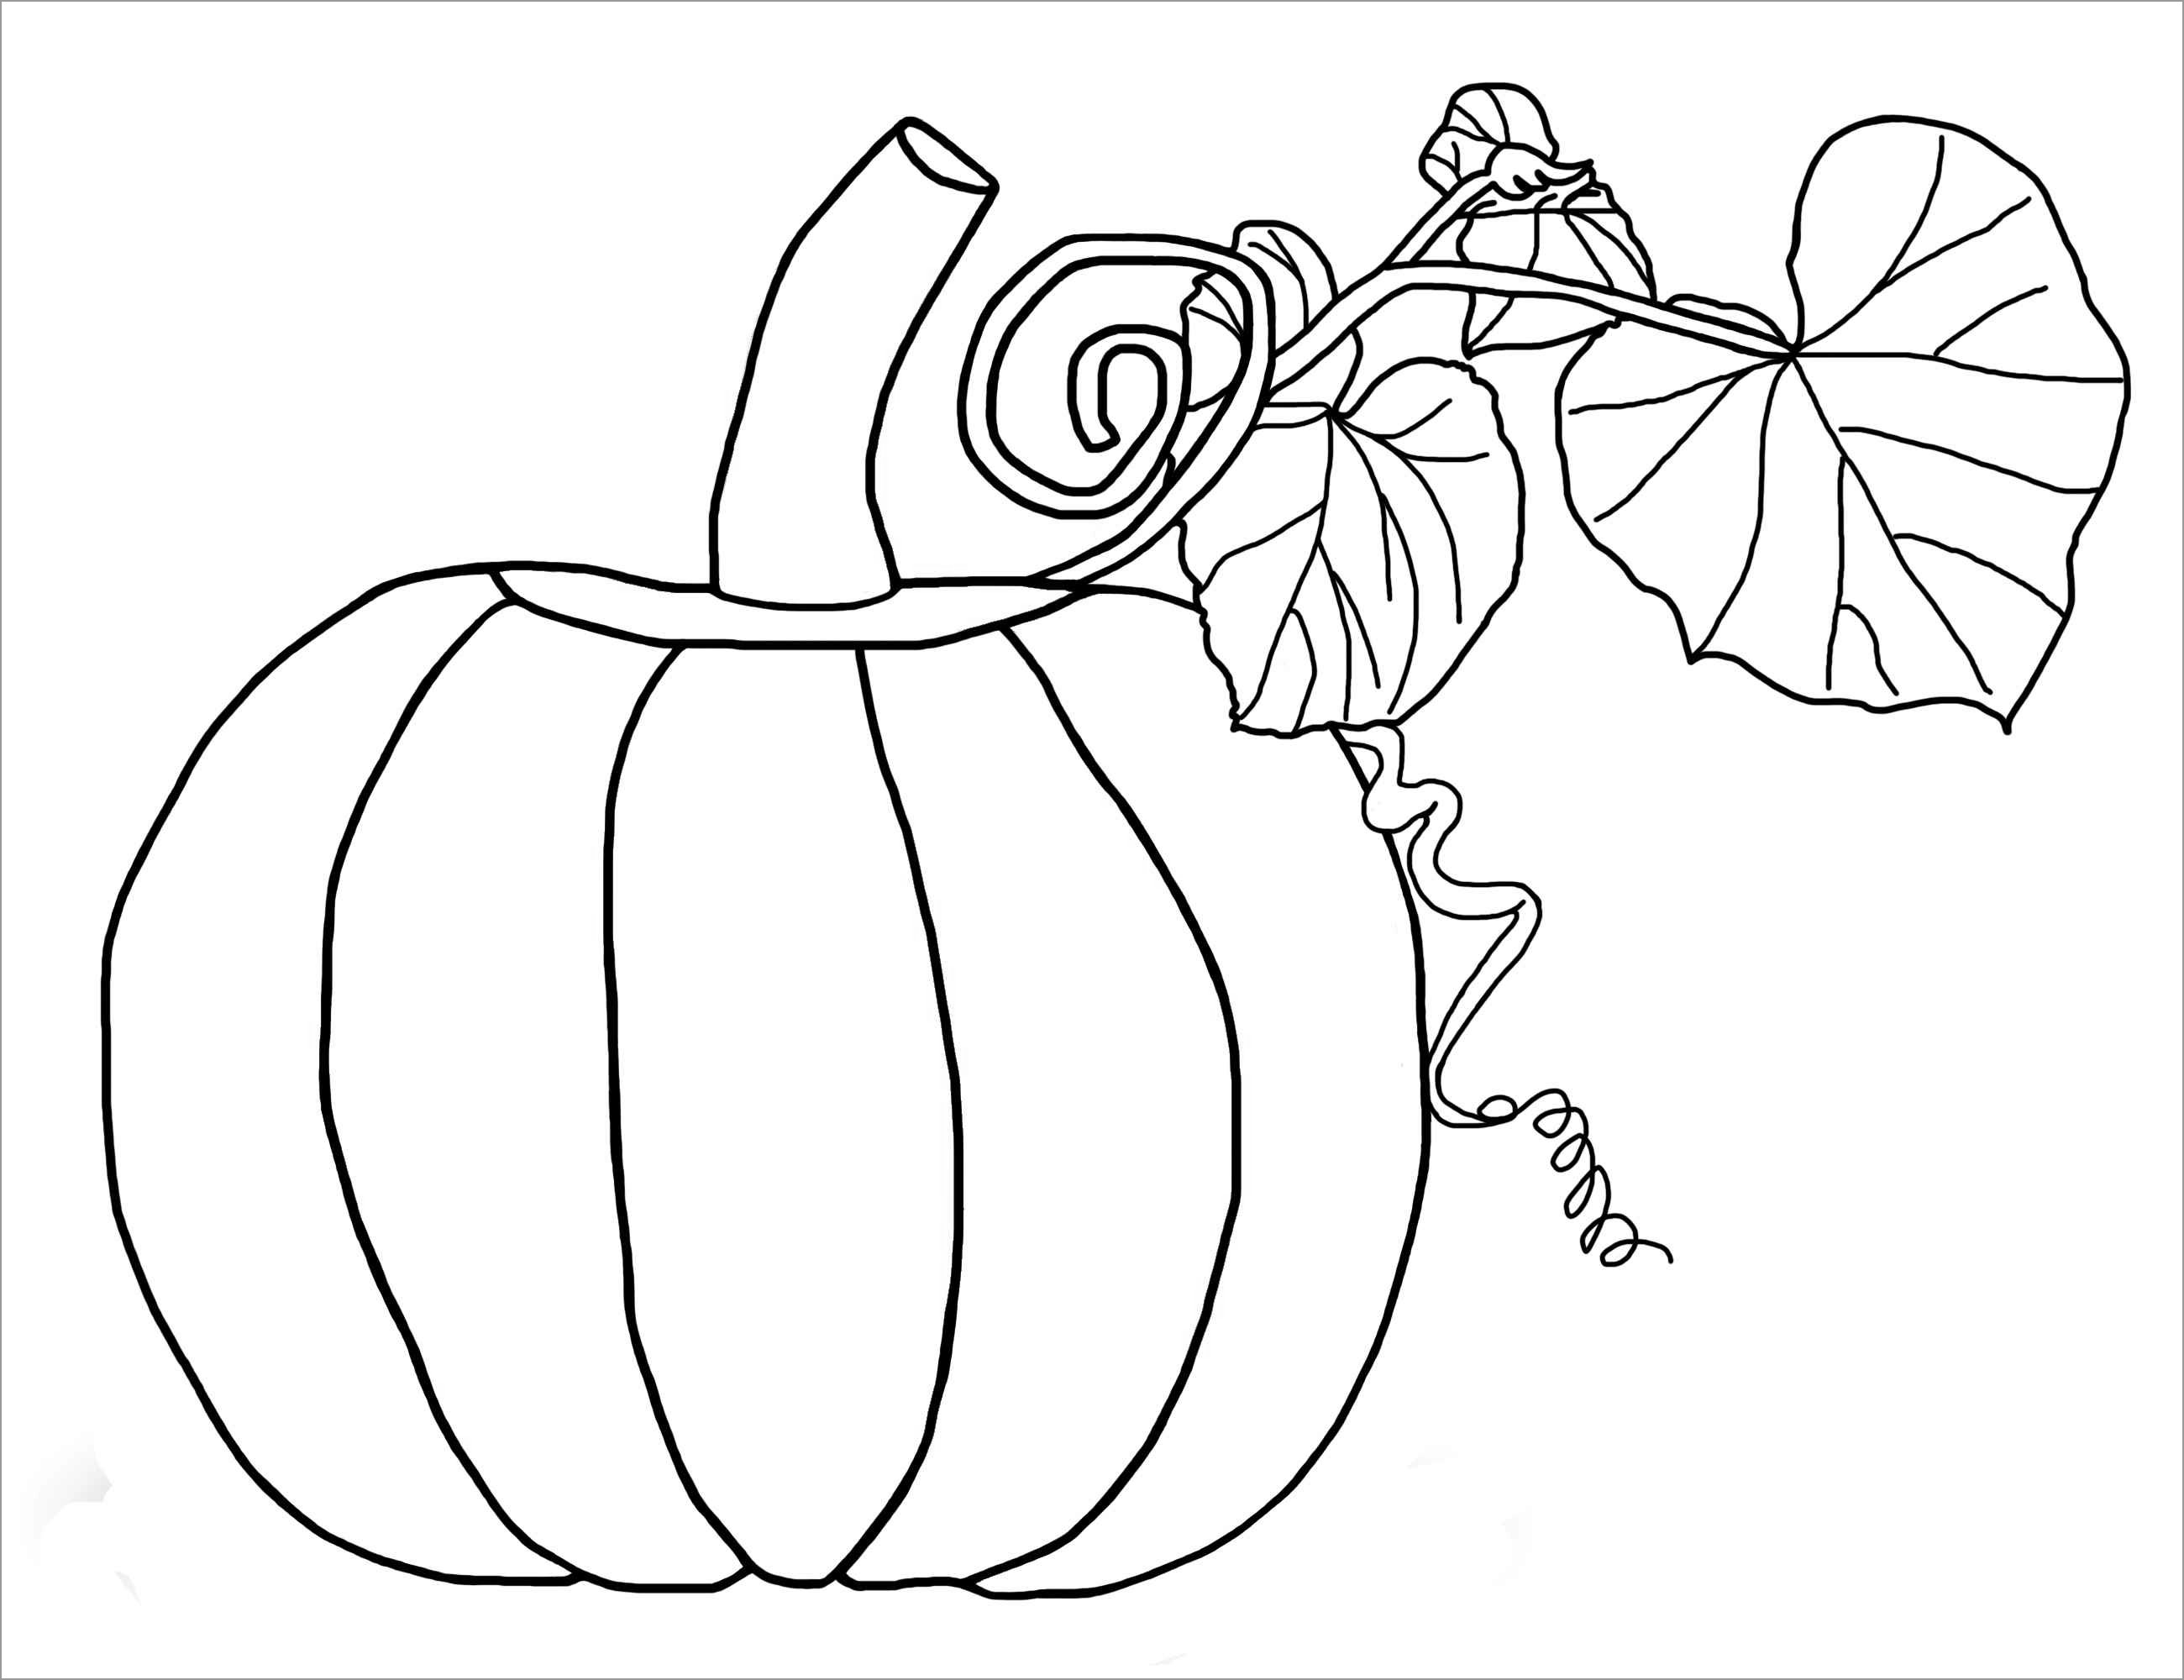 Printable Pumpkins Coloring Pages for Kids